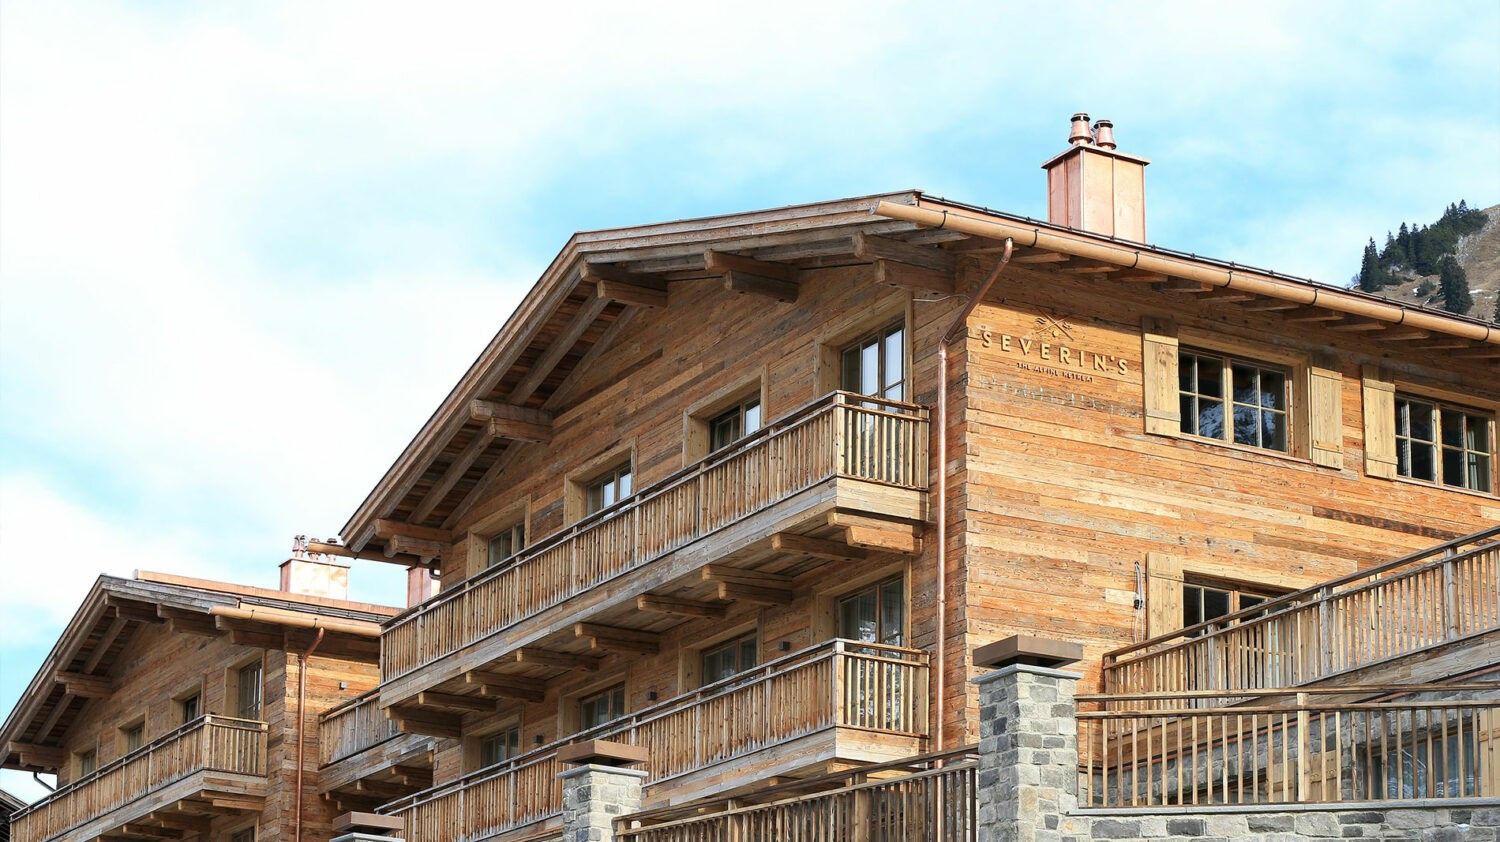 severin-s-alpine-retreat-hotel-front